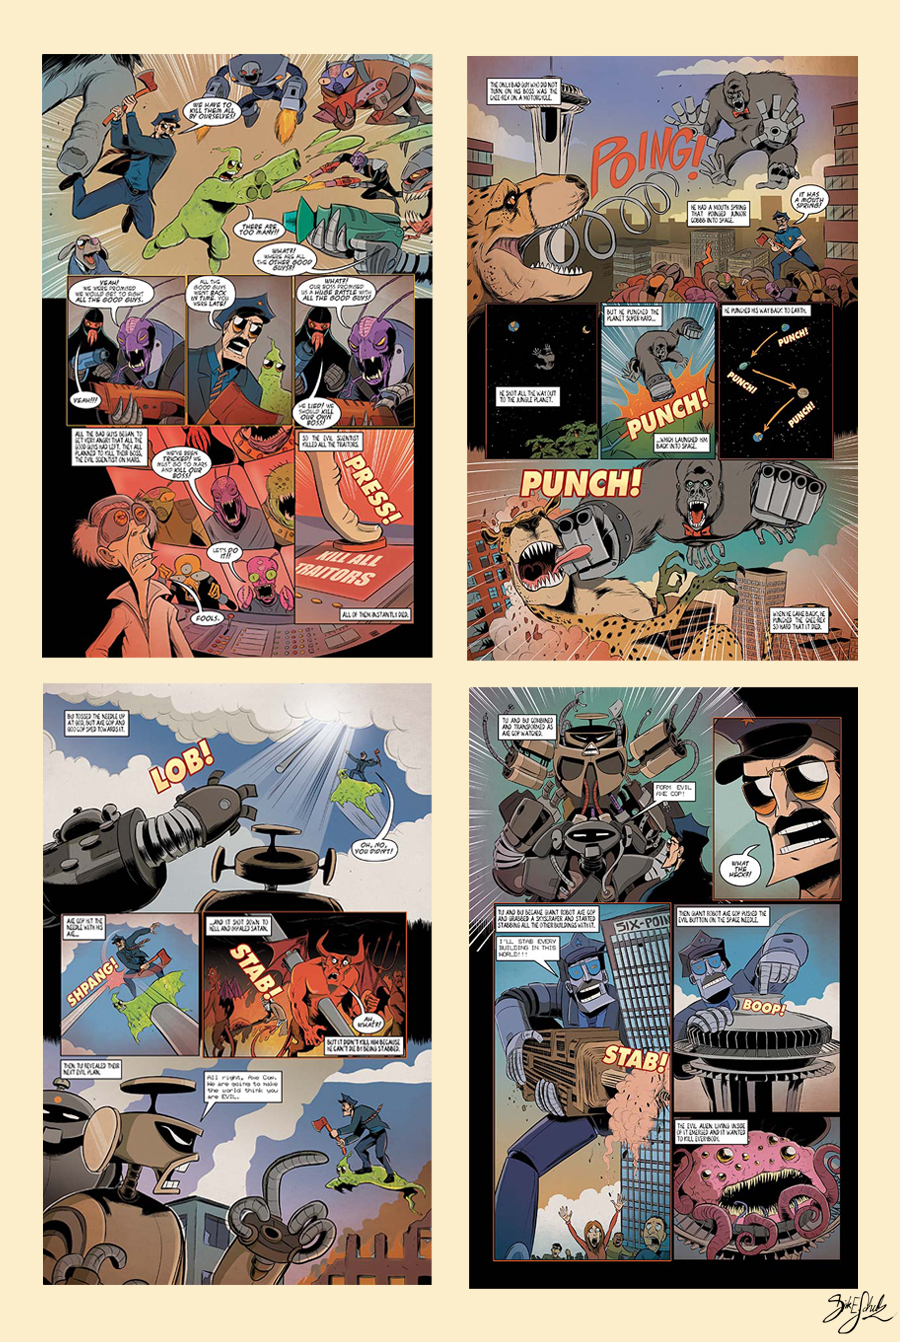 Axe Cop 2 Issue 2 - preview by Themrock